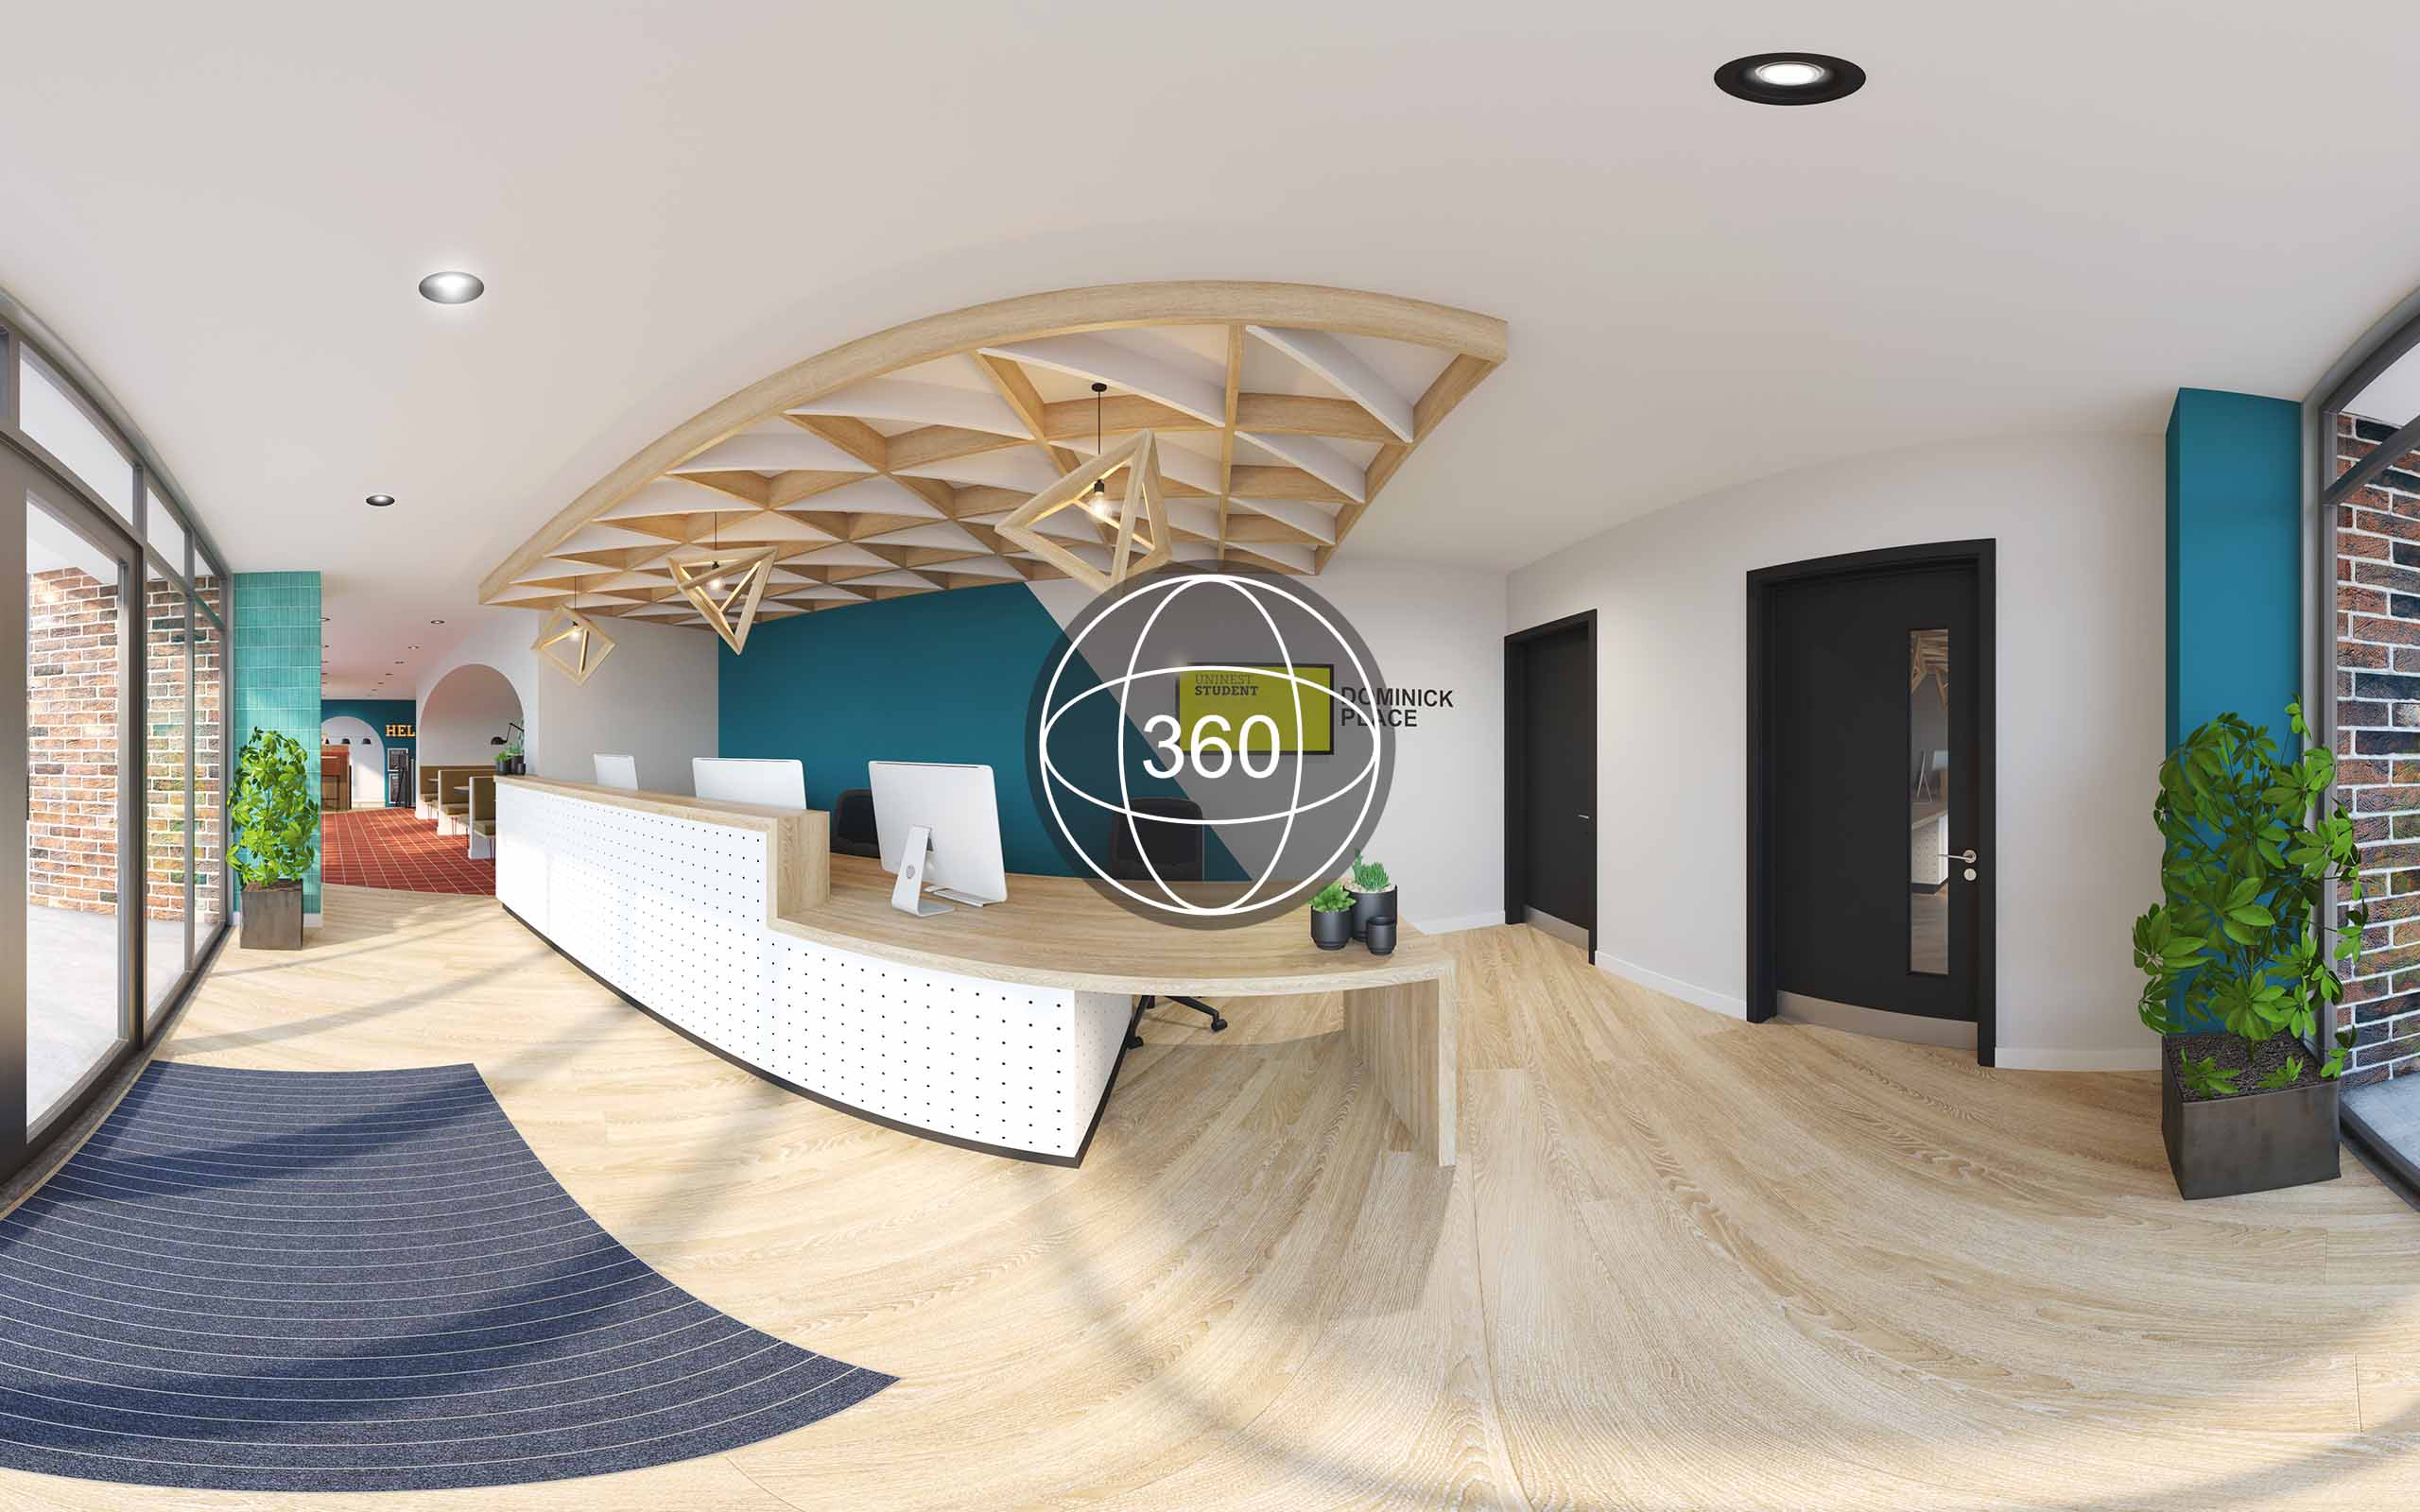 Off plans 360 virtual tour of Dominick Place student accommodation in Dublin 7.